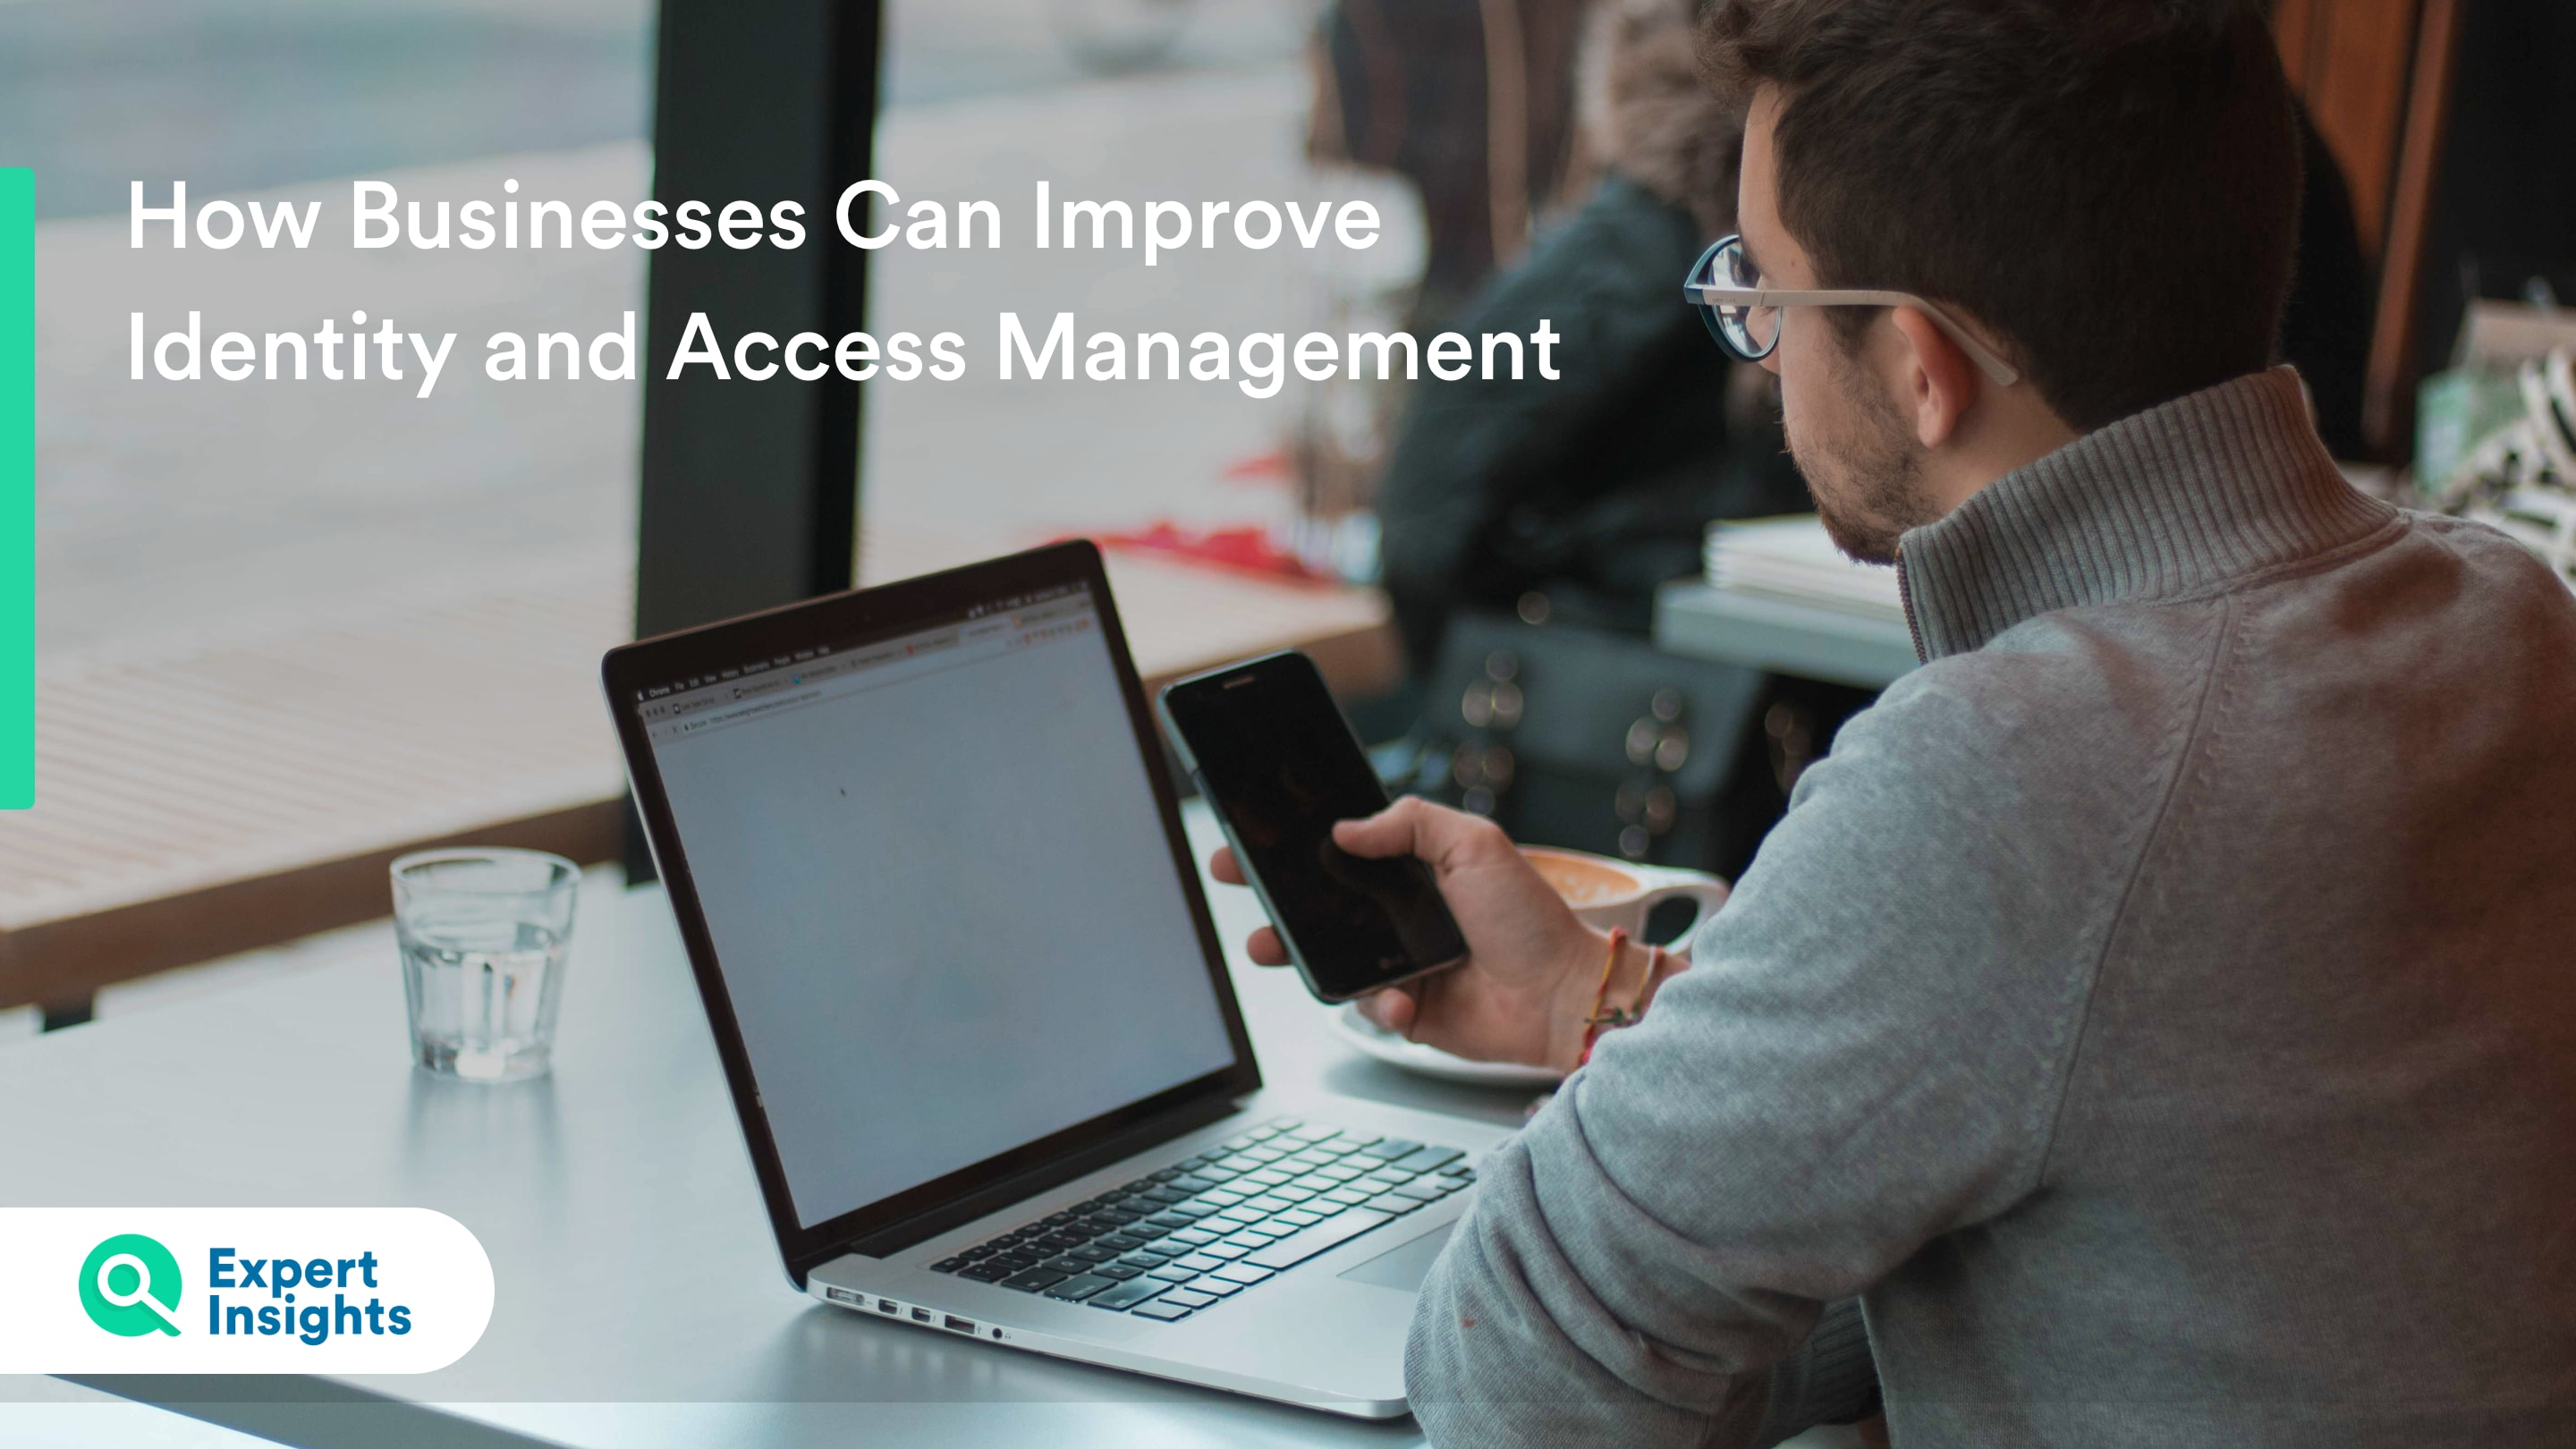 Expert Insights Identity and Access Management